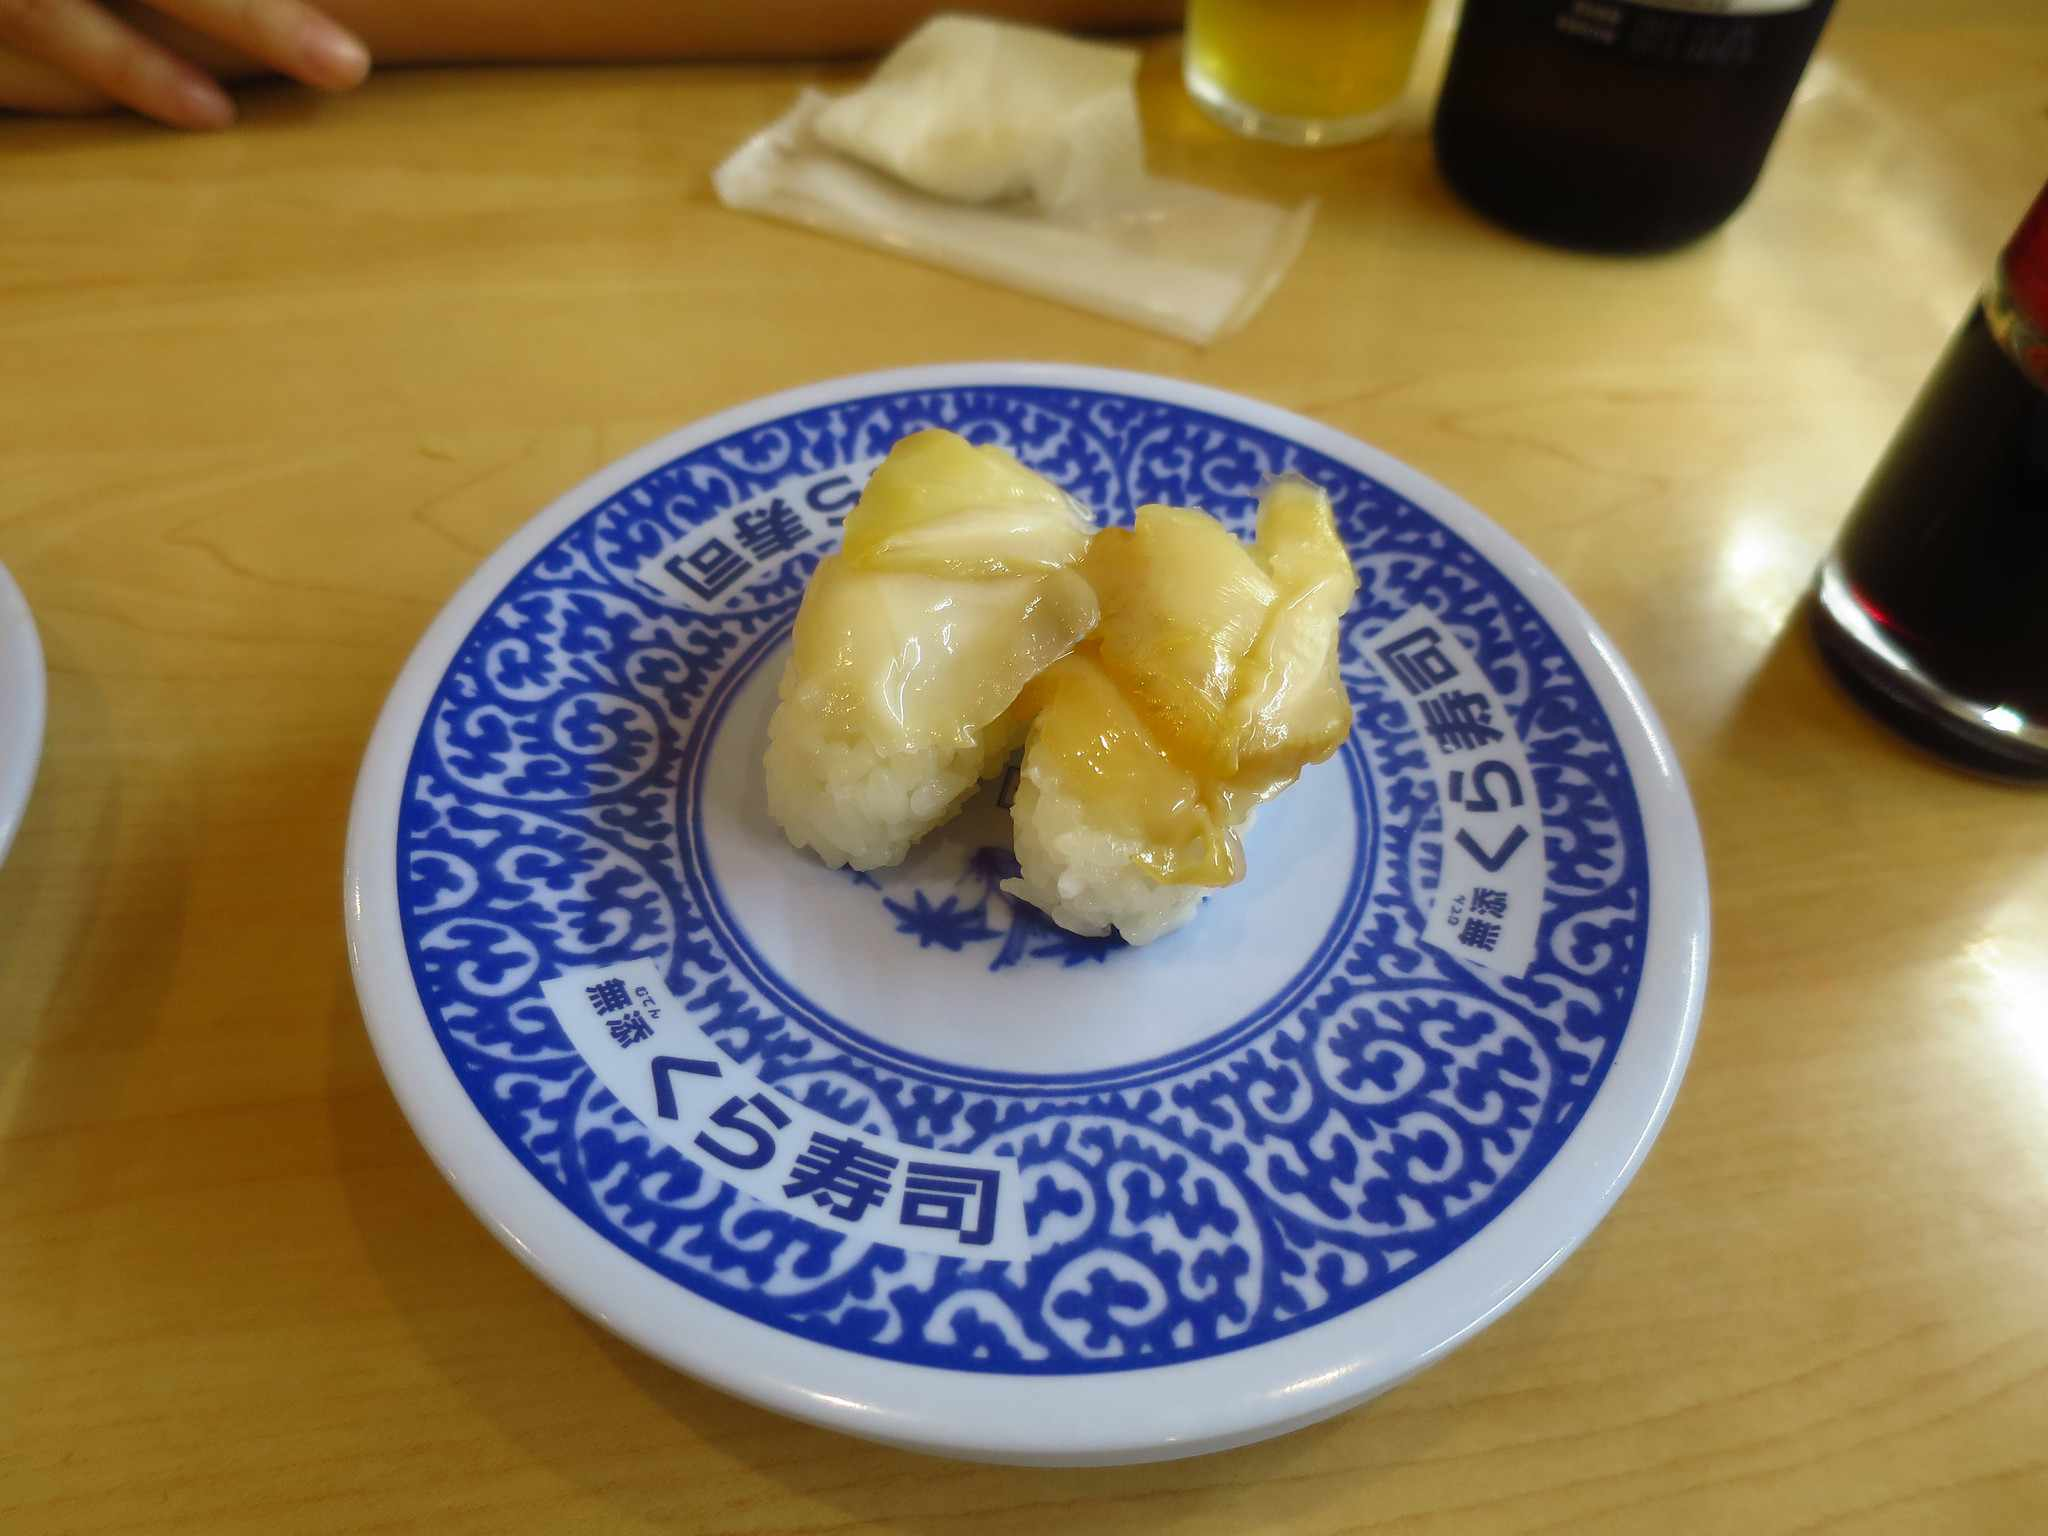 Two nigiri on a blue and white porcelain plate